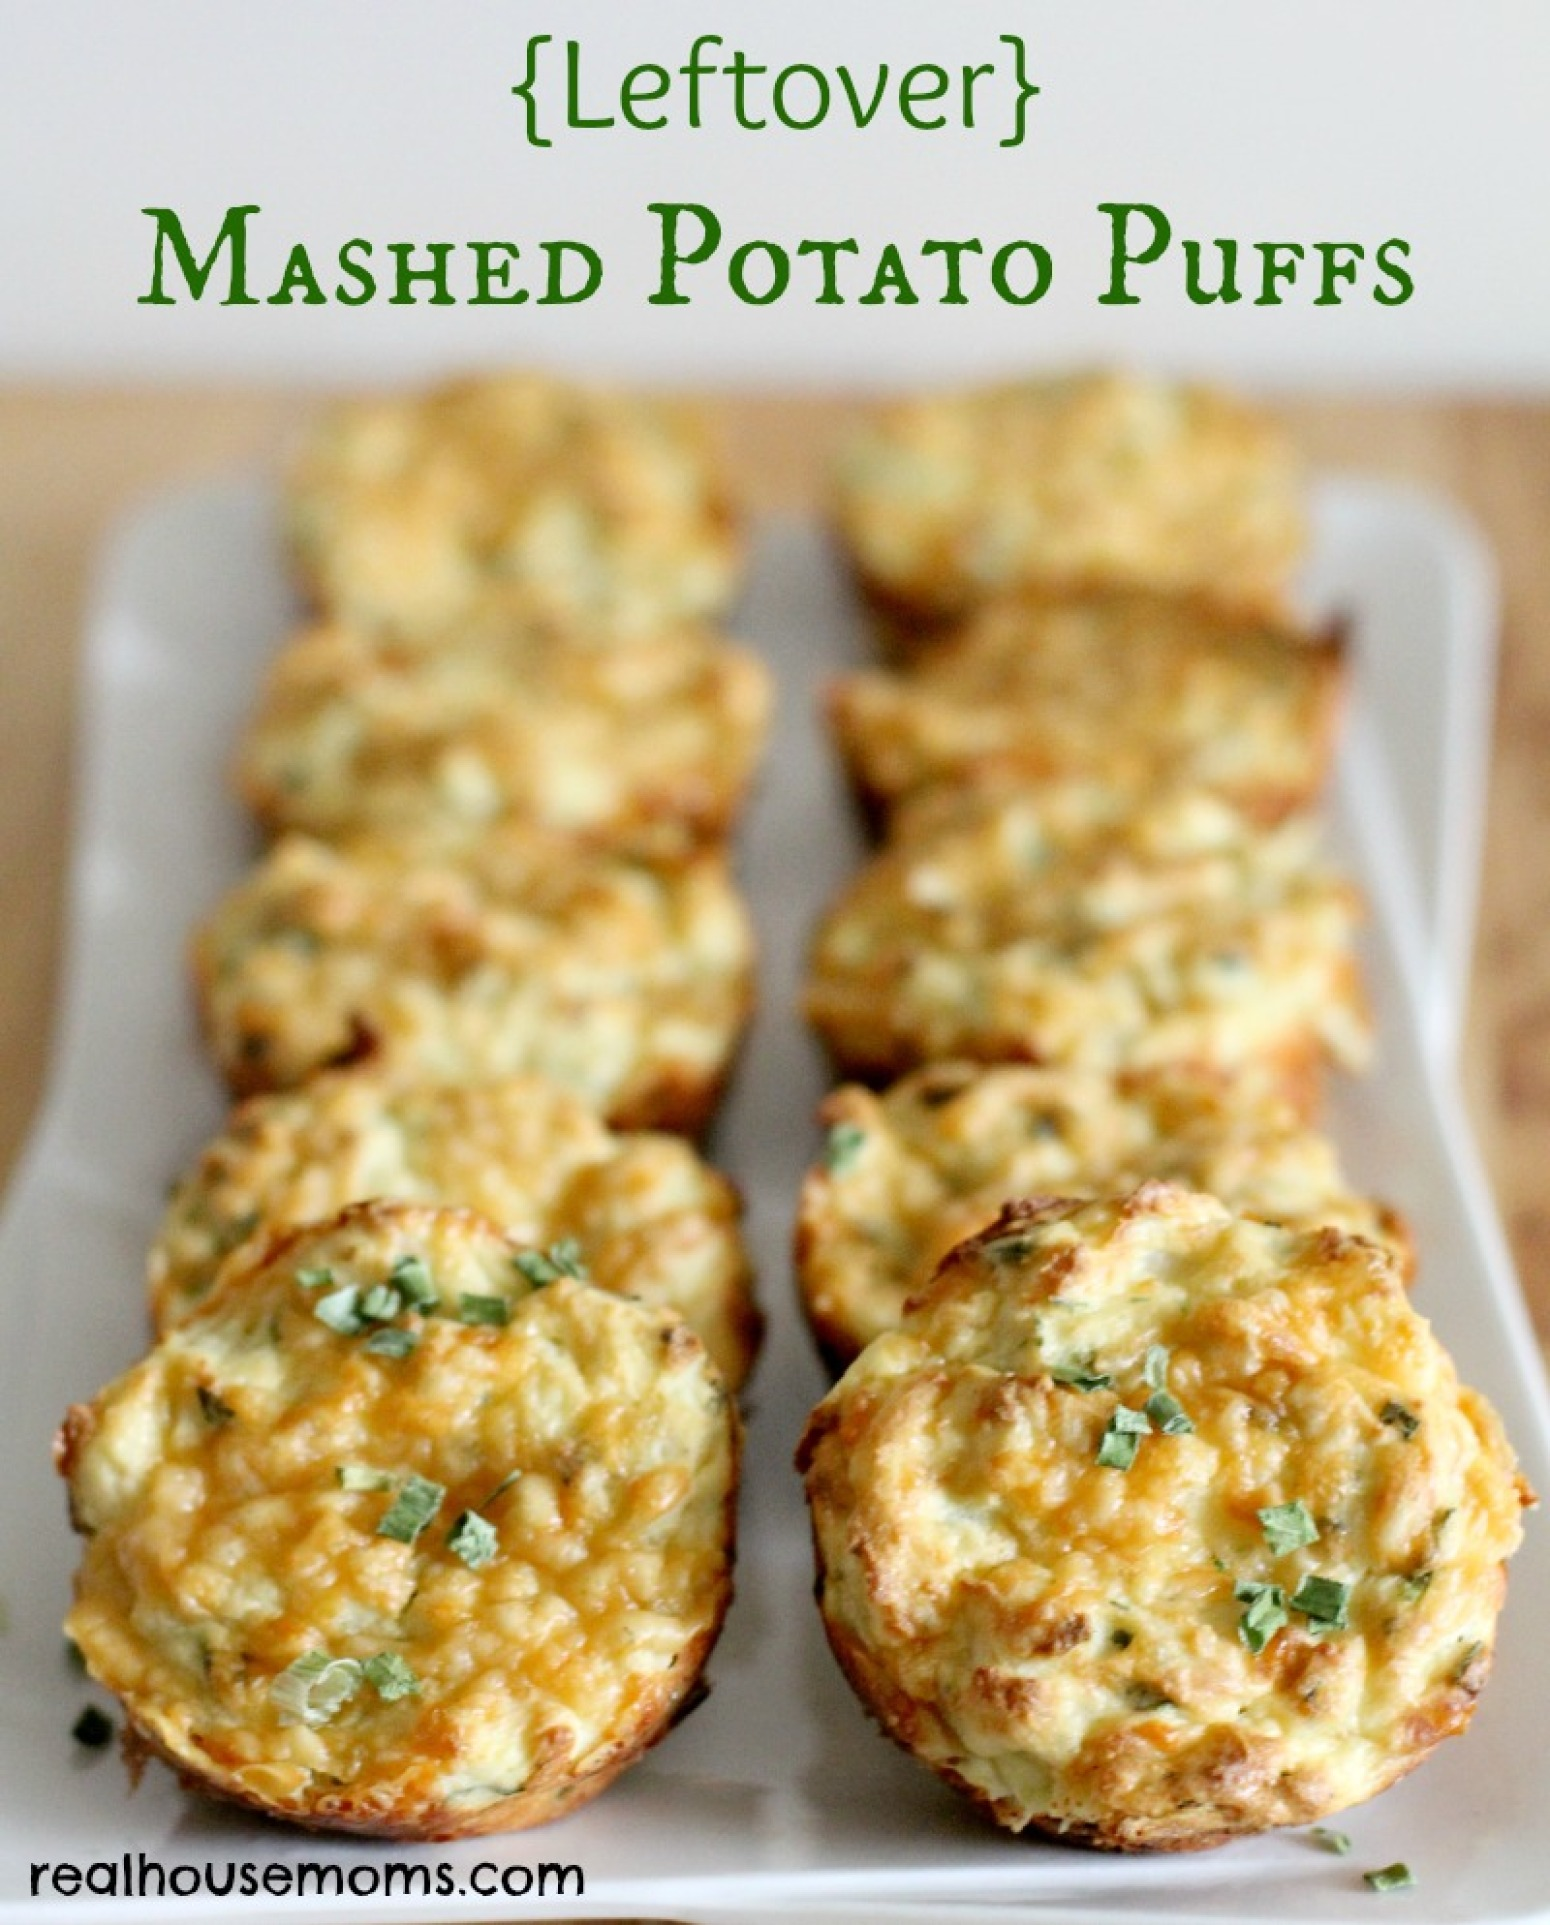 Leftover} Mashed Potato Puffs Recipe 2 | Just A Pinch Recipes